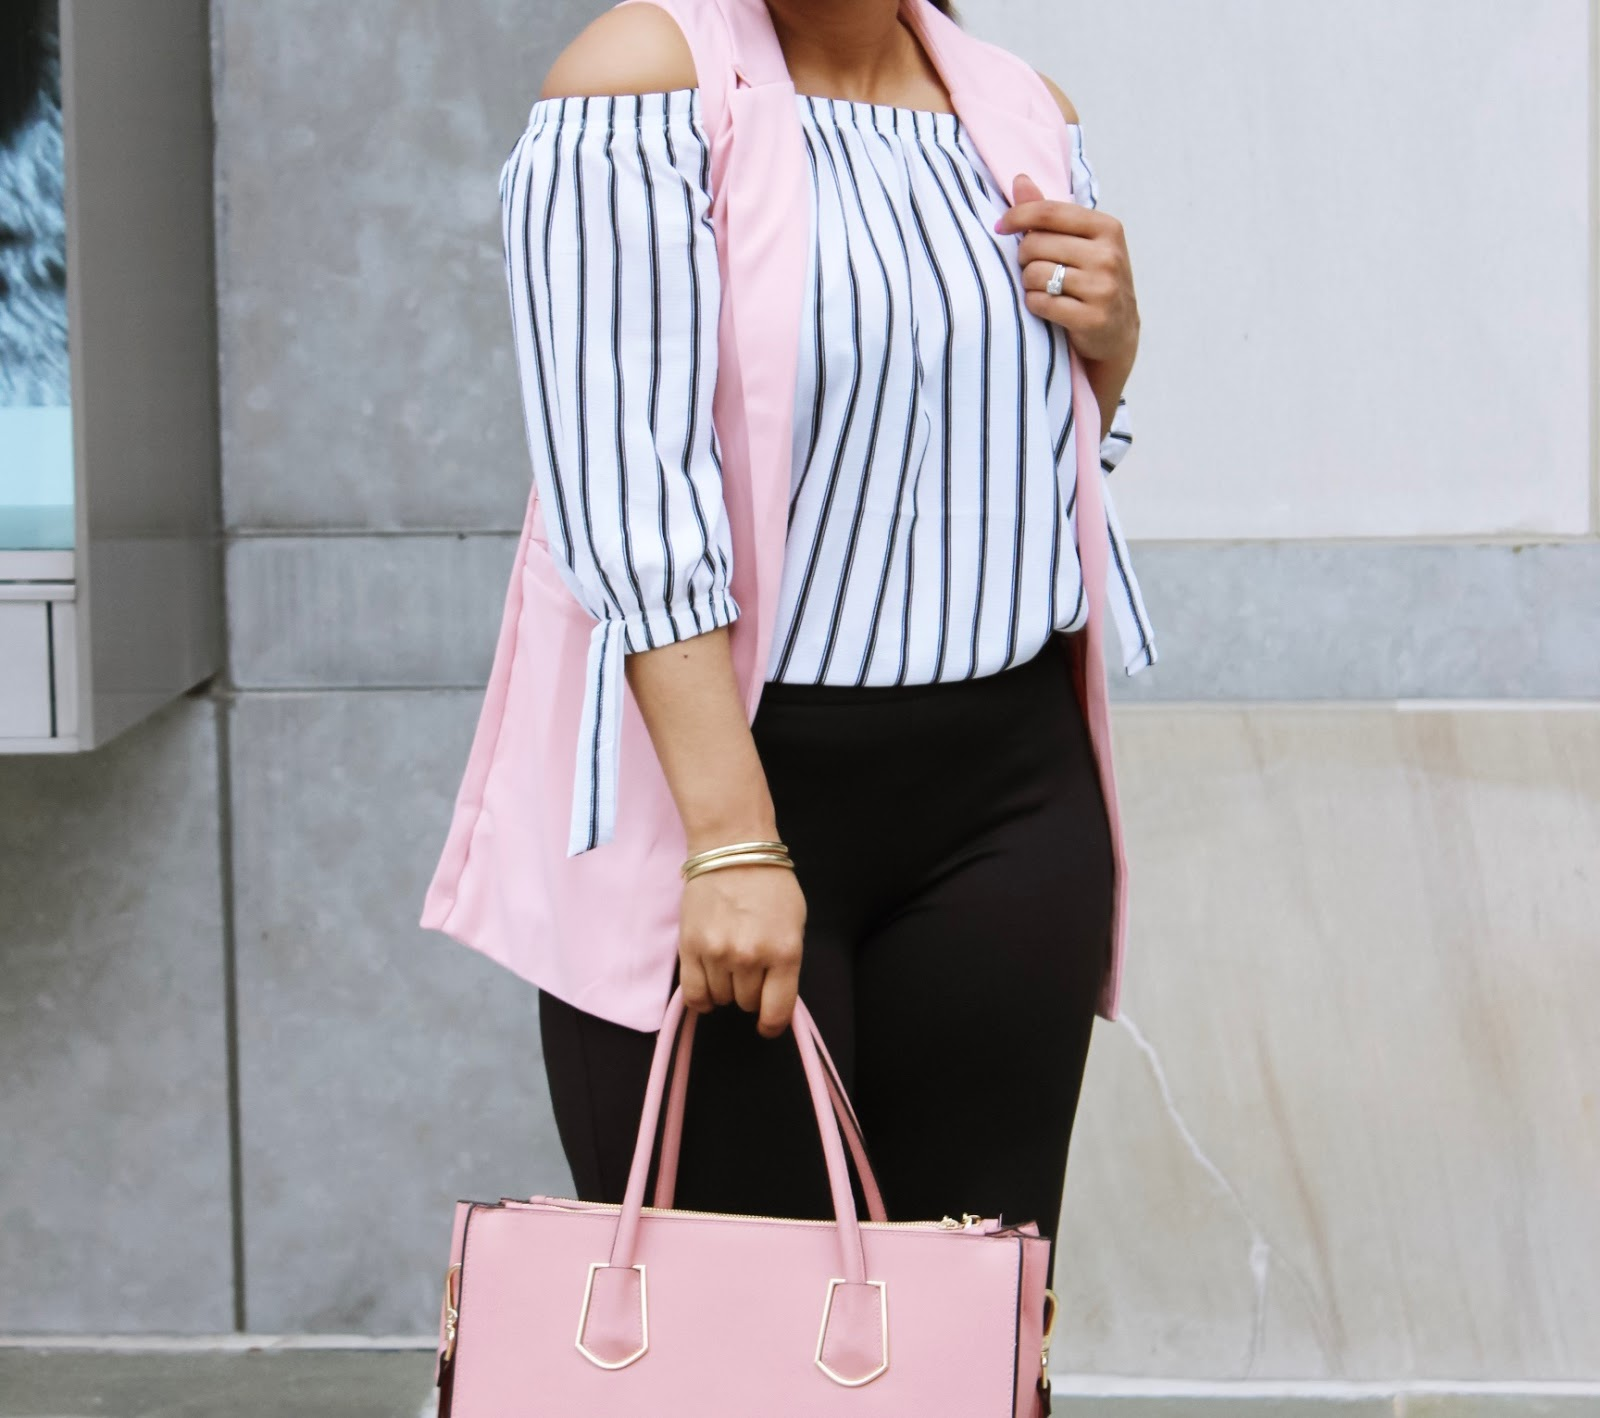 Off the shoulder, pink vest, off the shoulder trend, striped off the shoulder top, culettos pants, structured bag